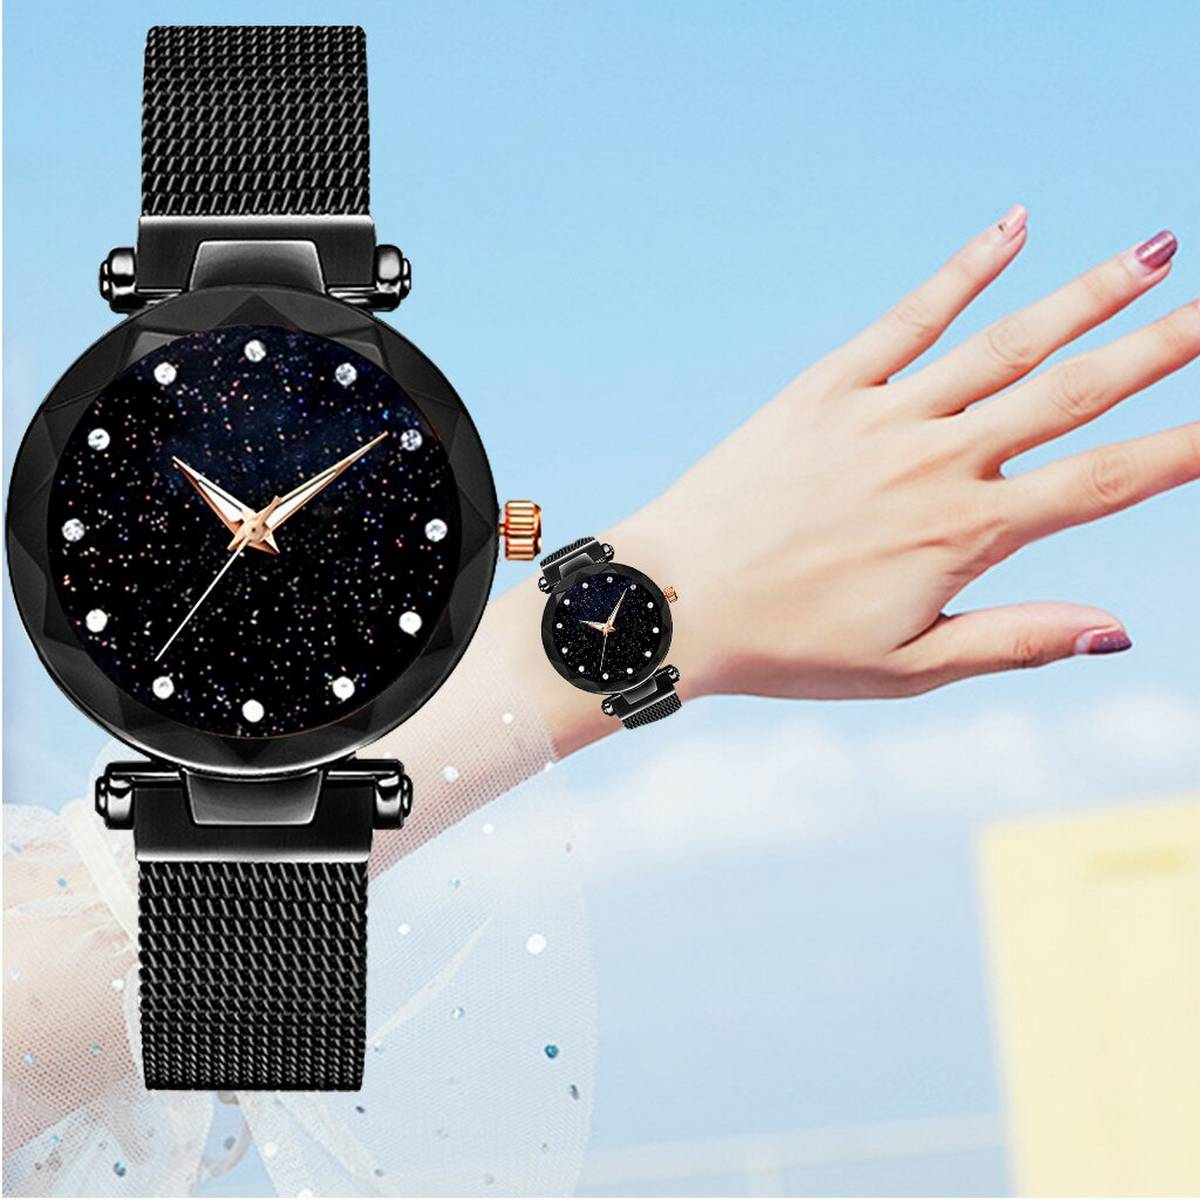 Urbane Watches Magnet Chain Watch For Women And Girls.